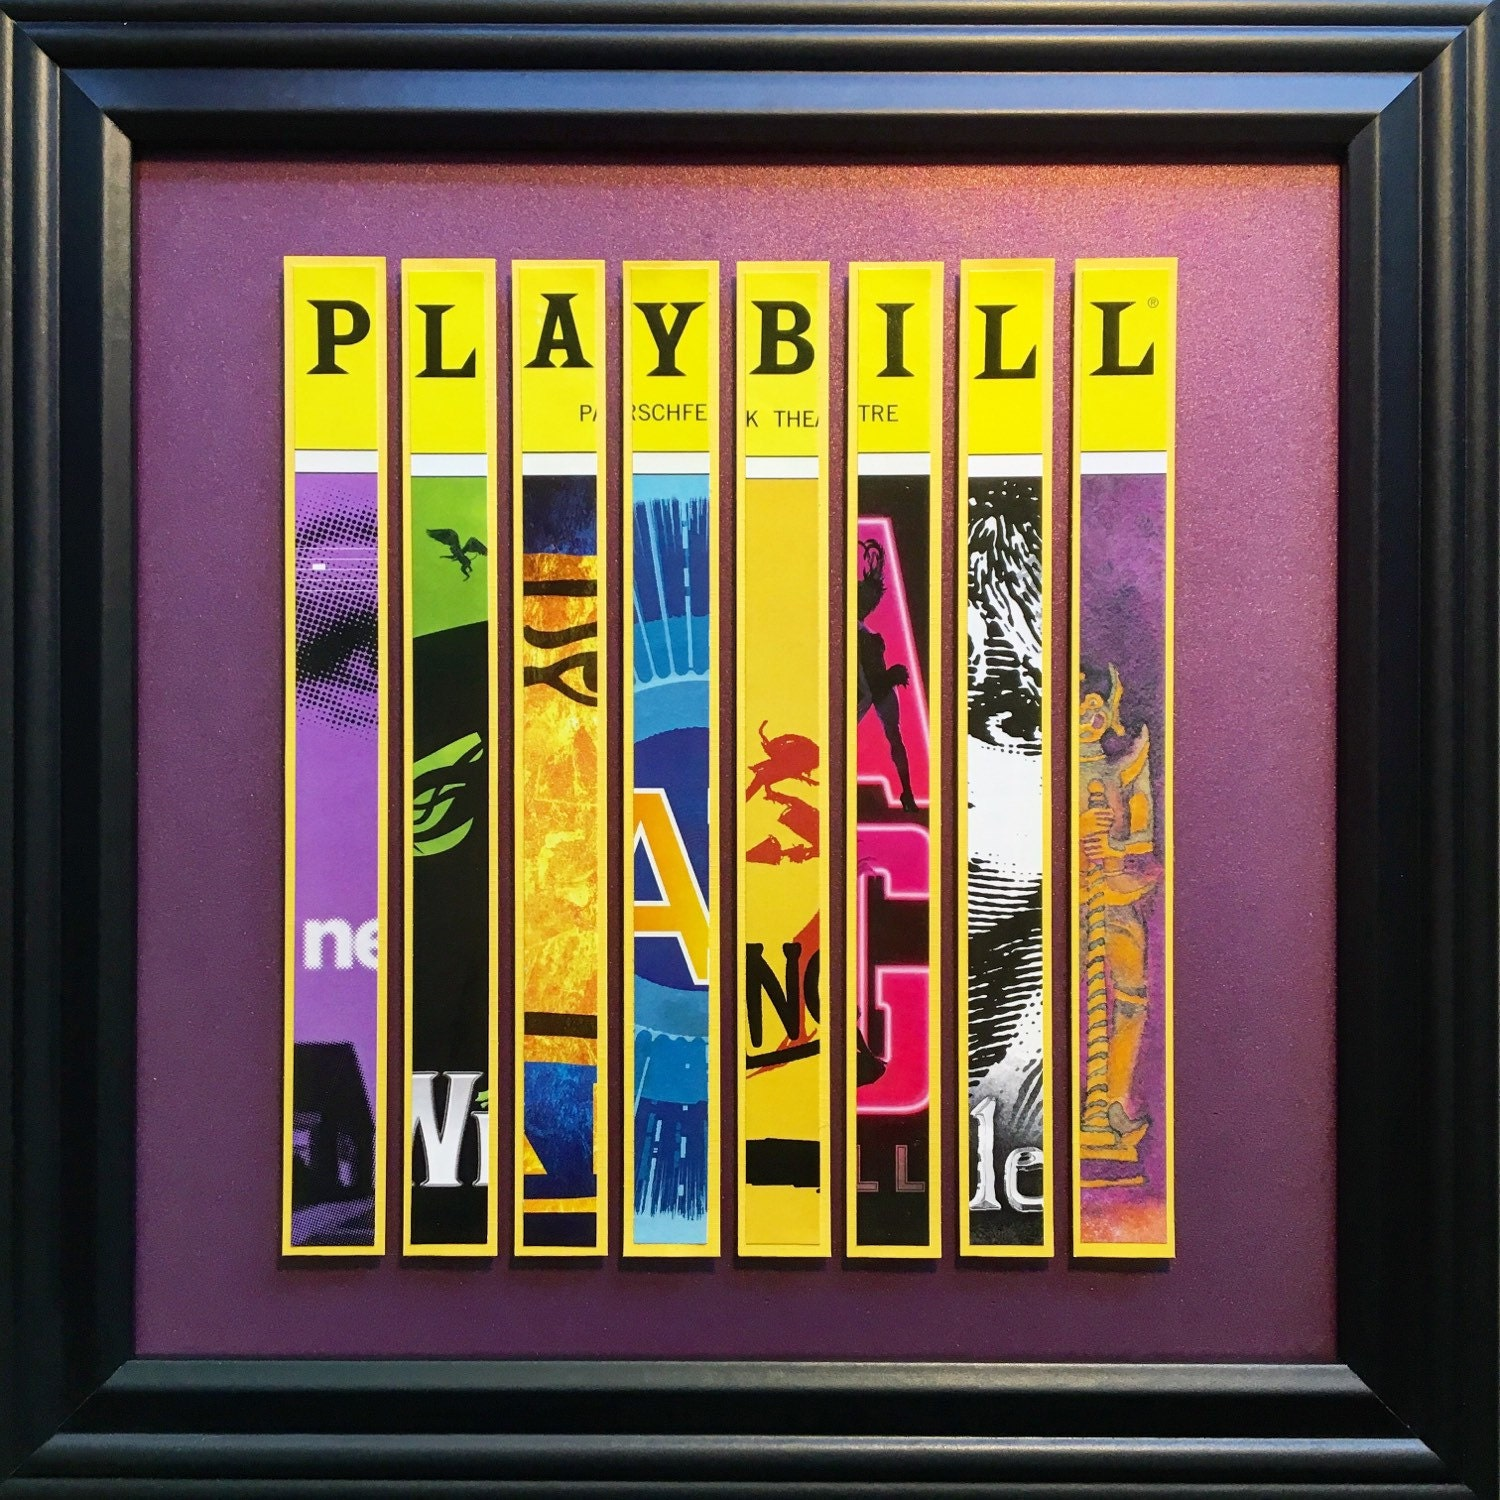 Custom Broadway Playbill Framed Art Collage - Personalize It!